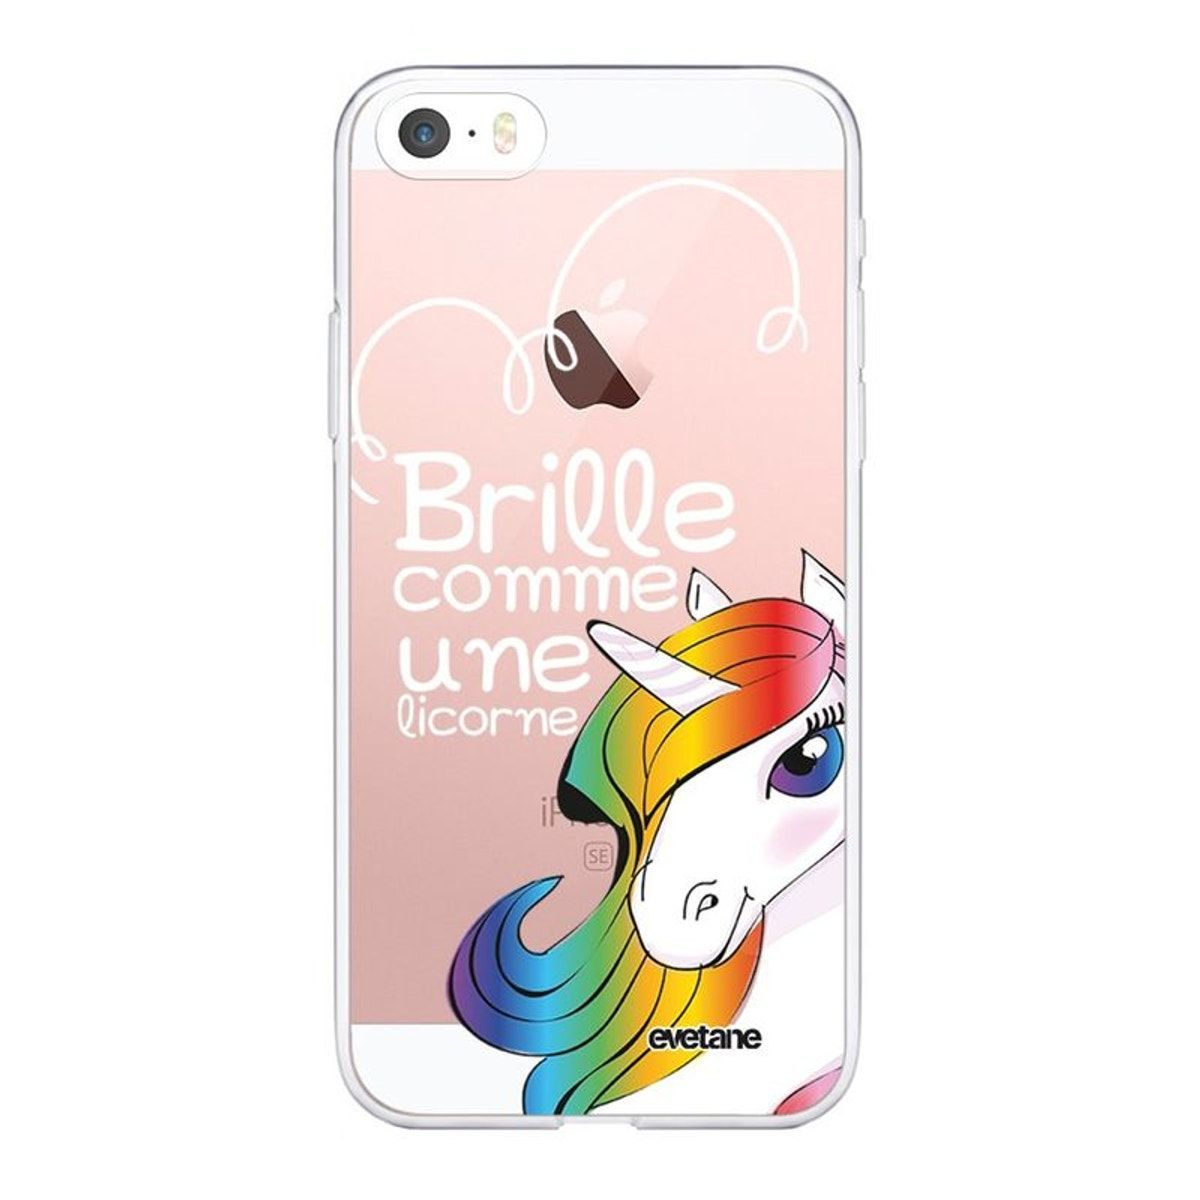 coque iphone 7 qui brille